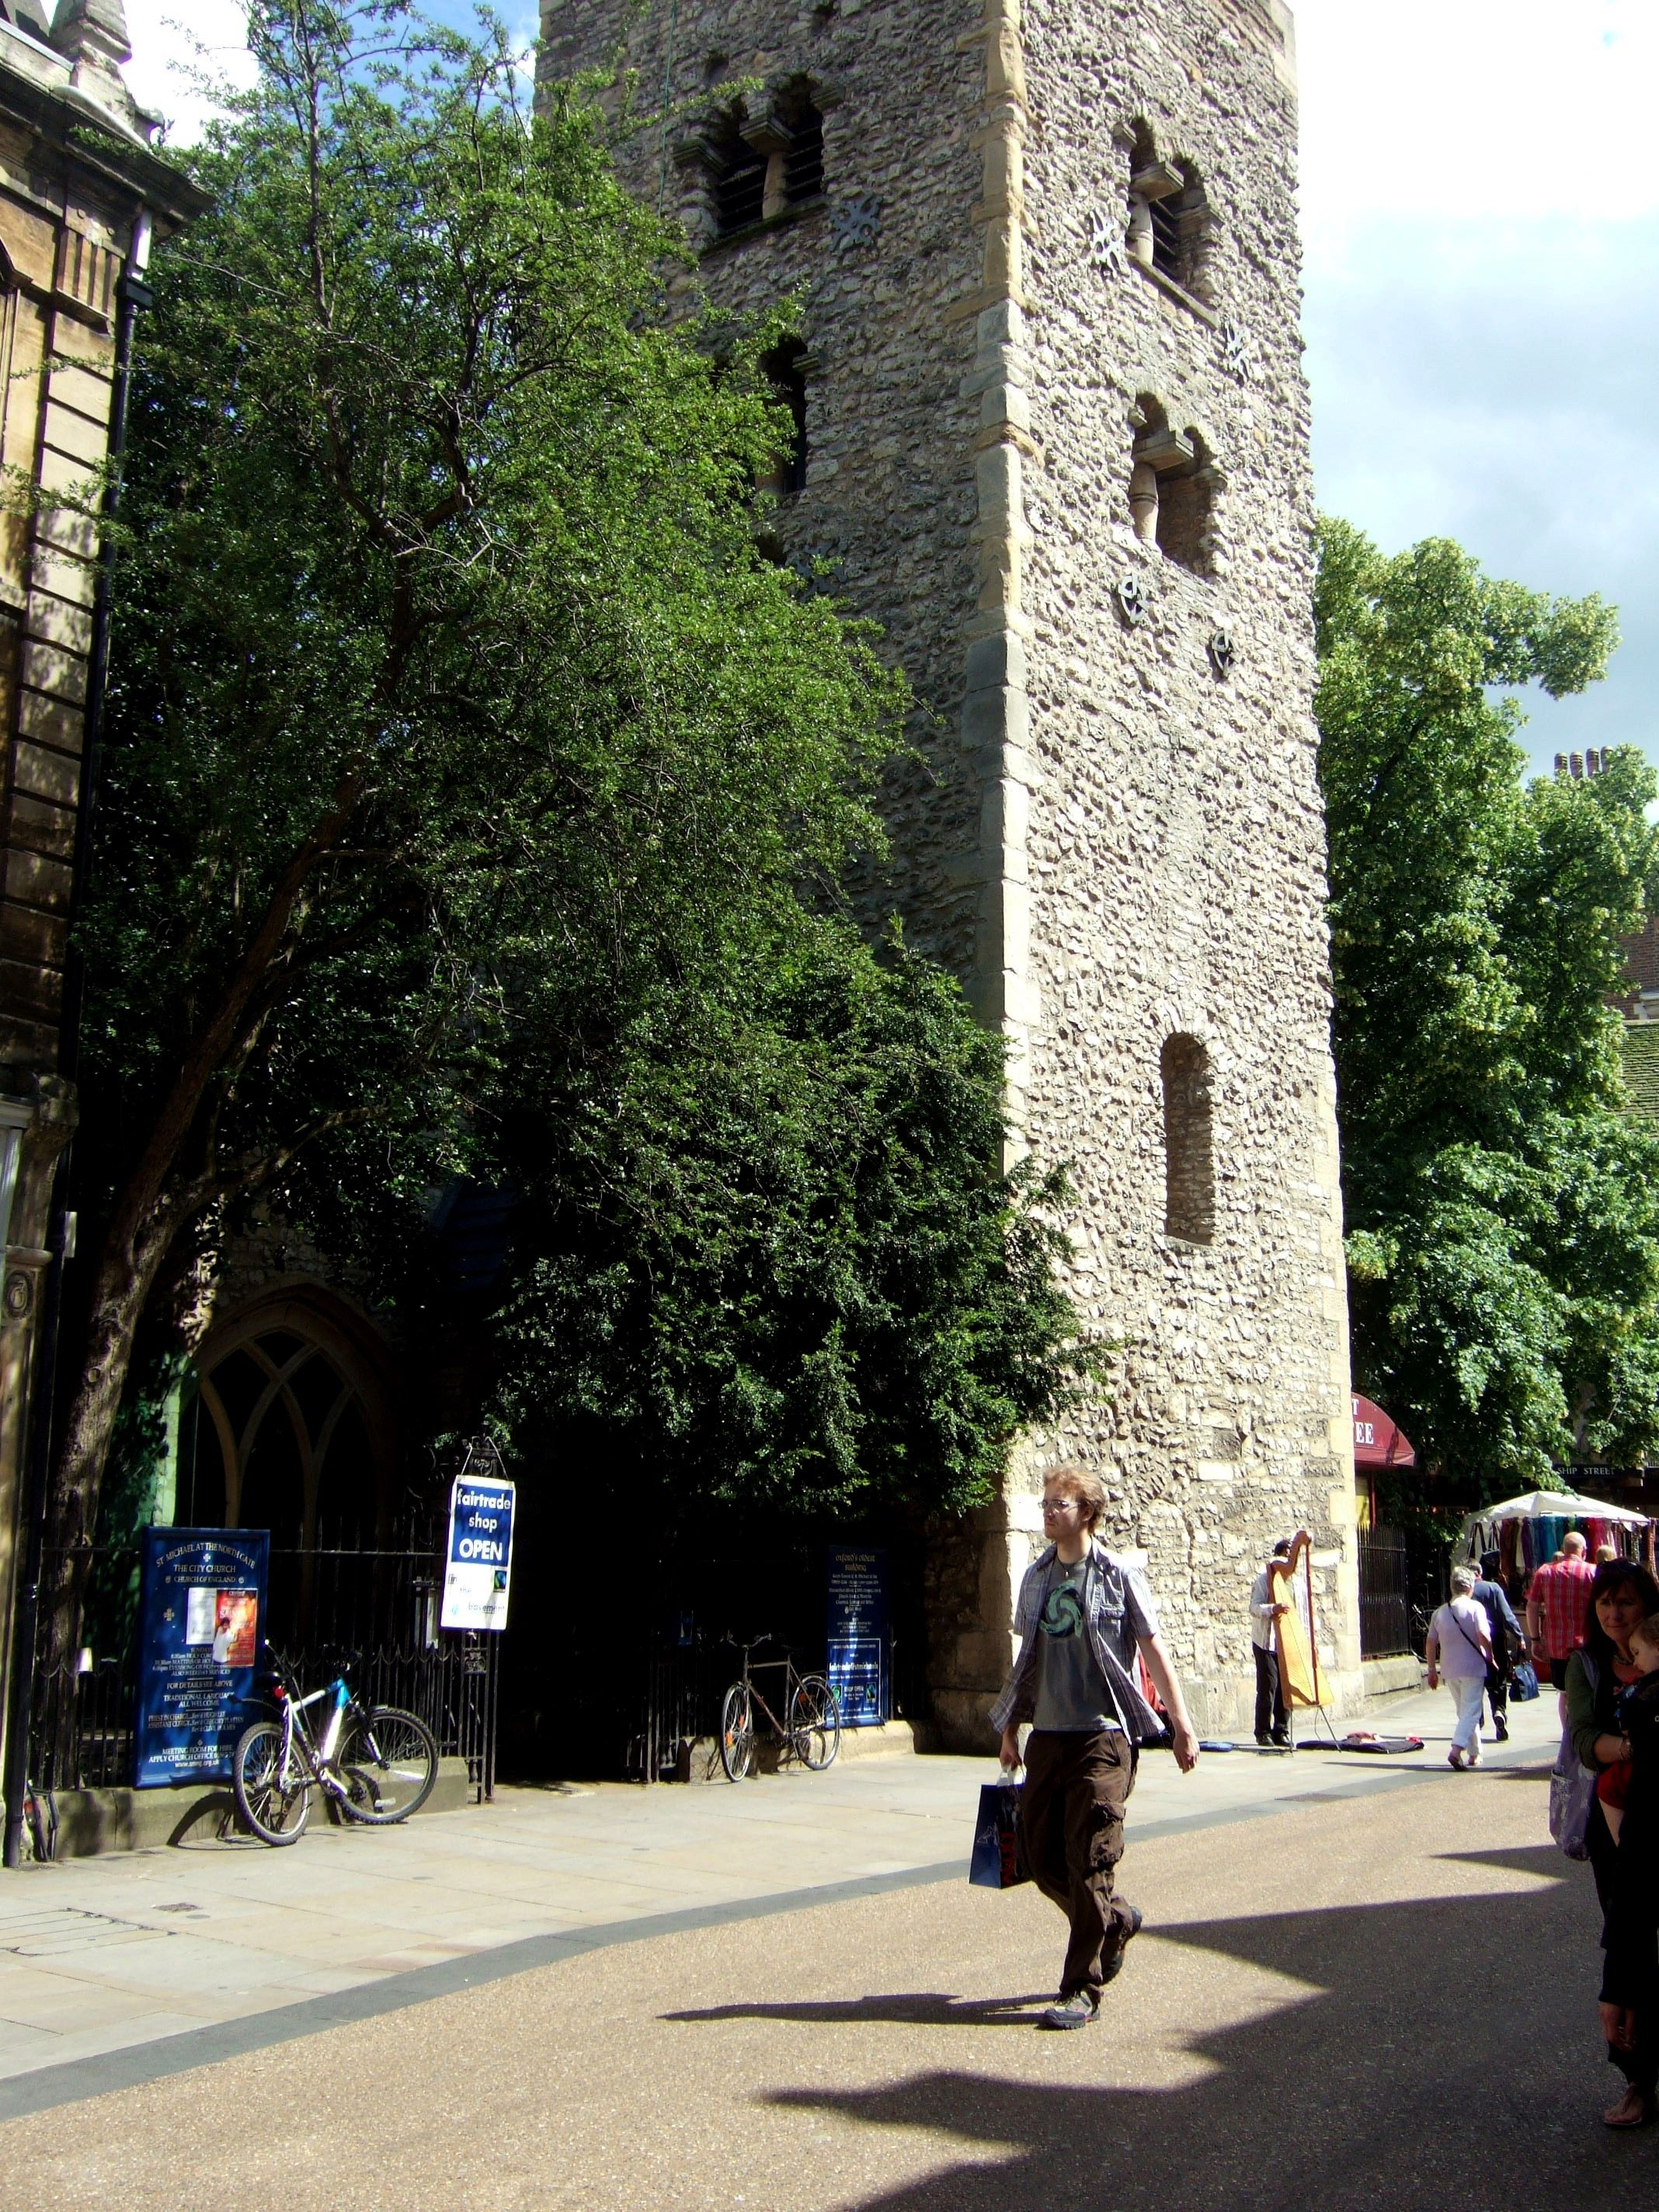 The Saxton Tower, built in 1040, is the oldest building in